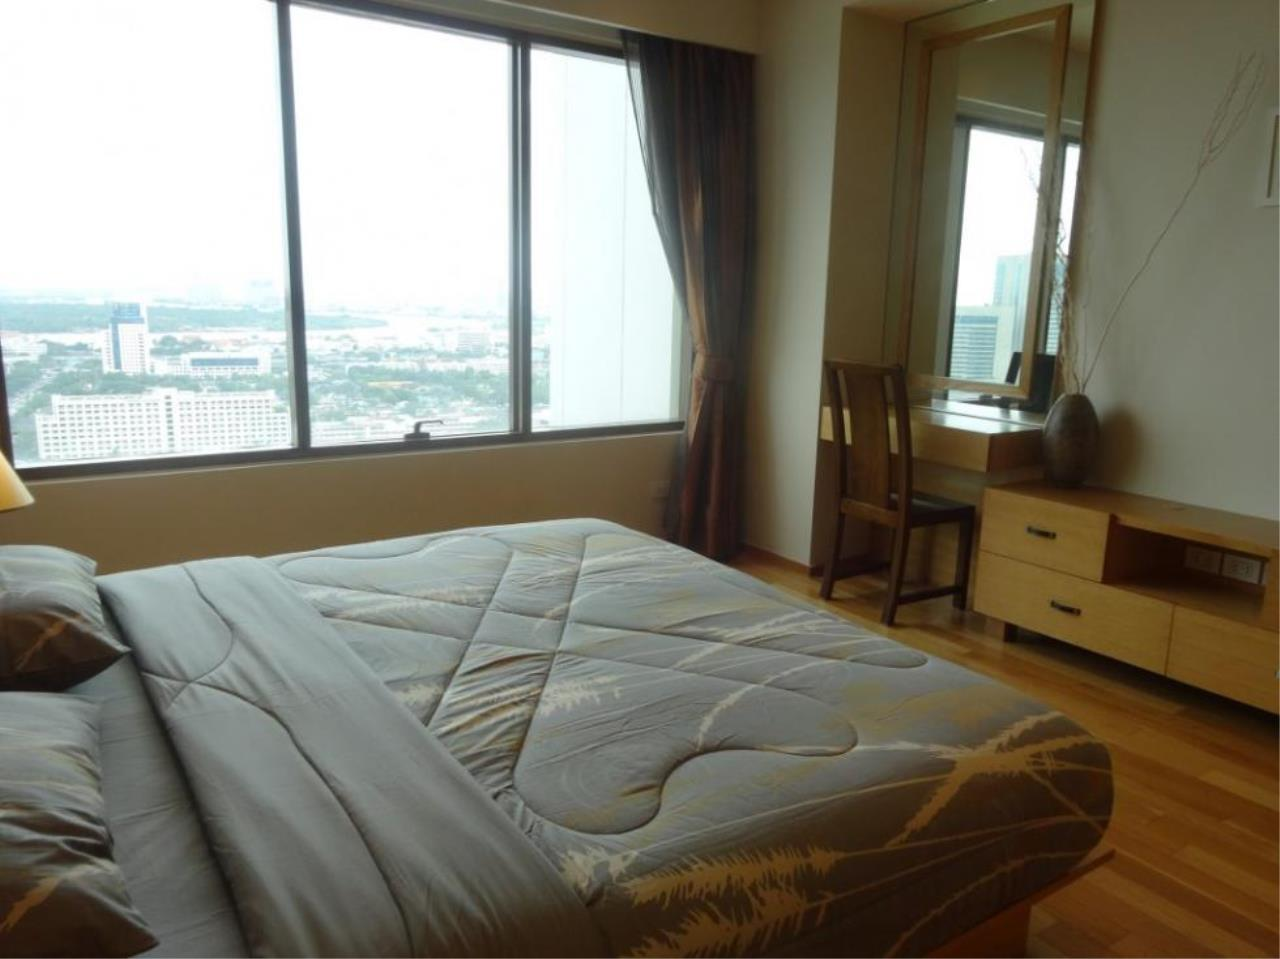 Piri Property Agency's one bedroom Condominium  on 9701 floor For Rent 1 11